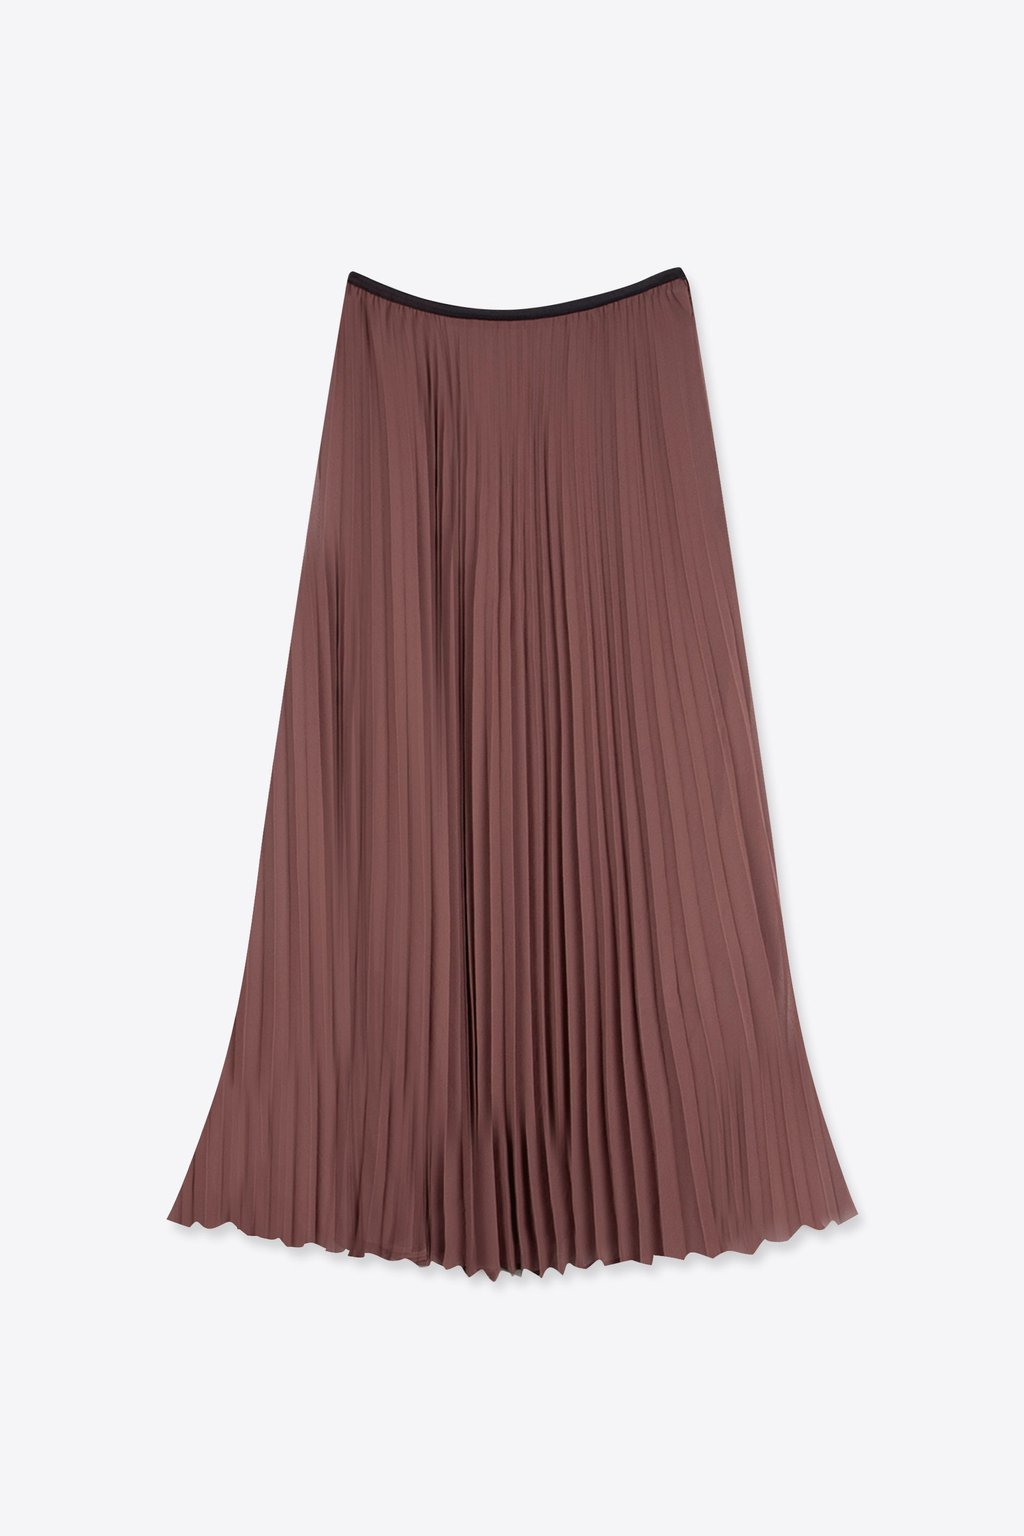 Skirt G007 Brown 14